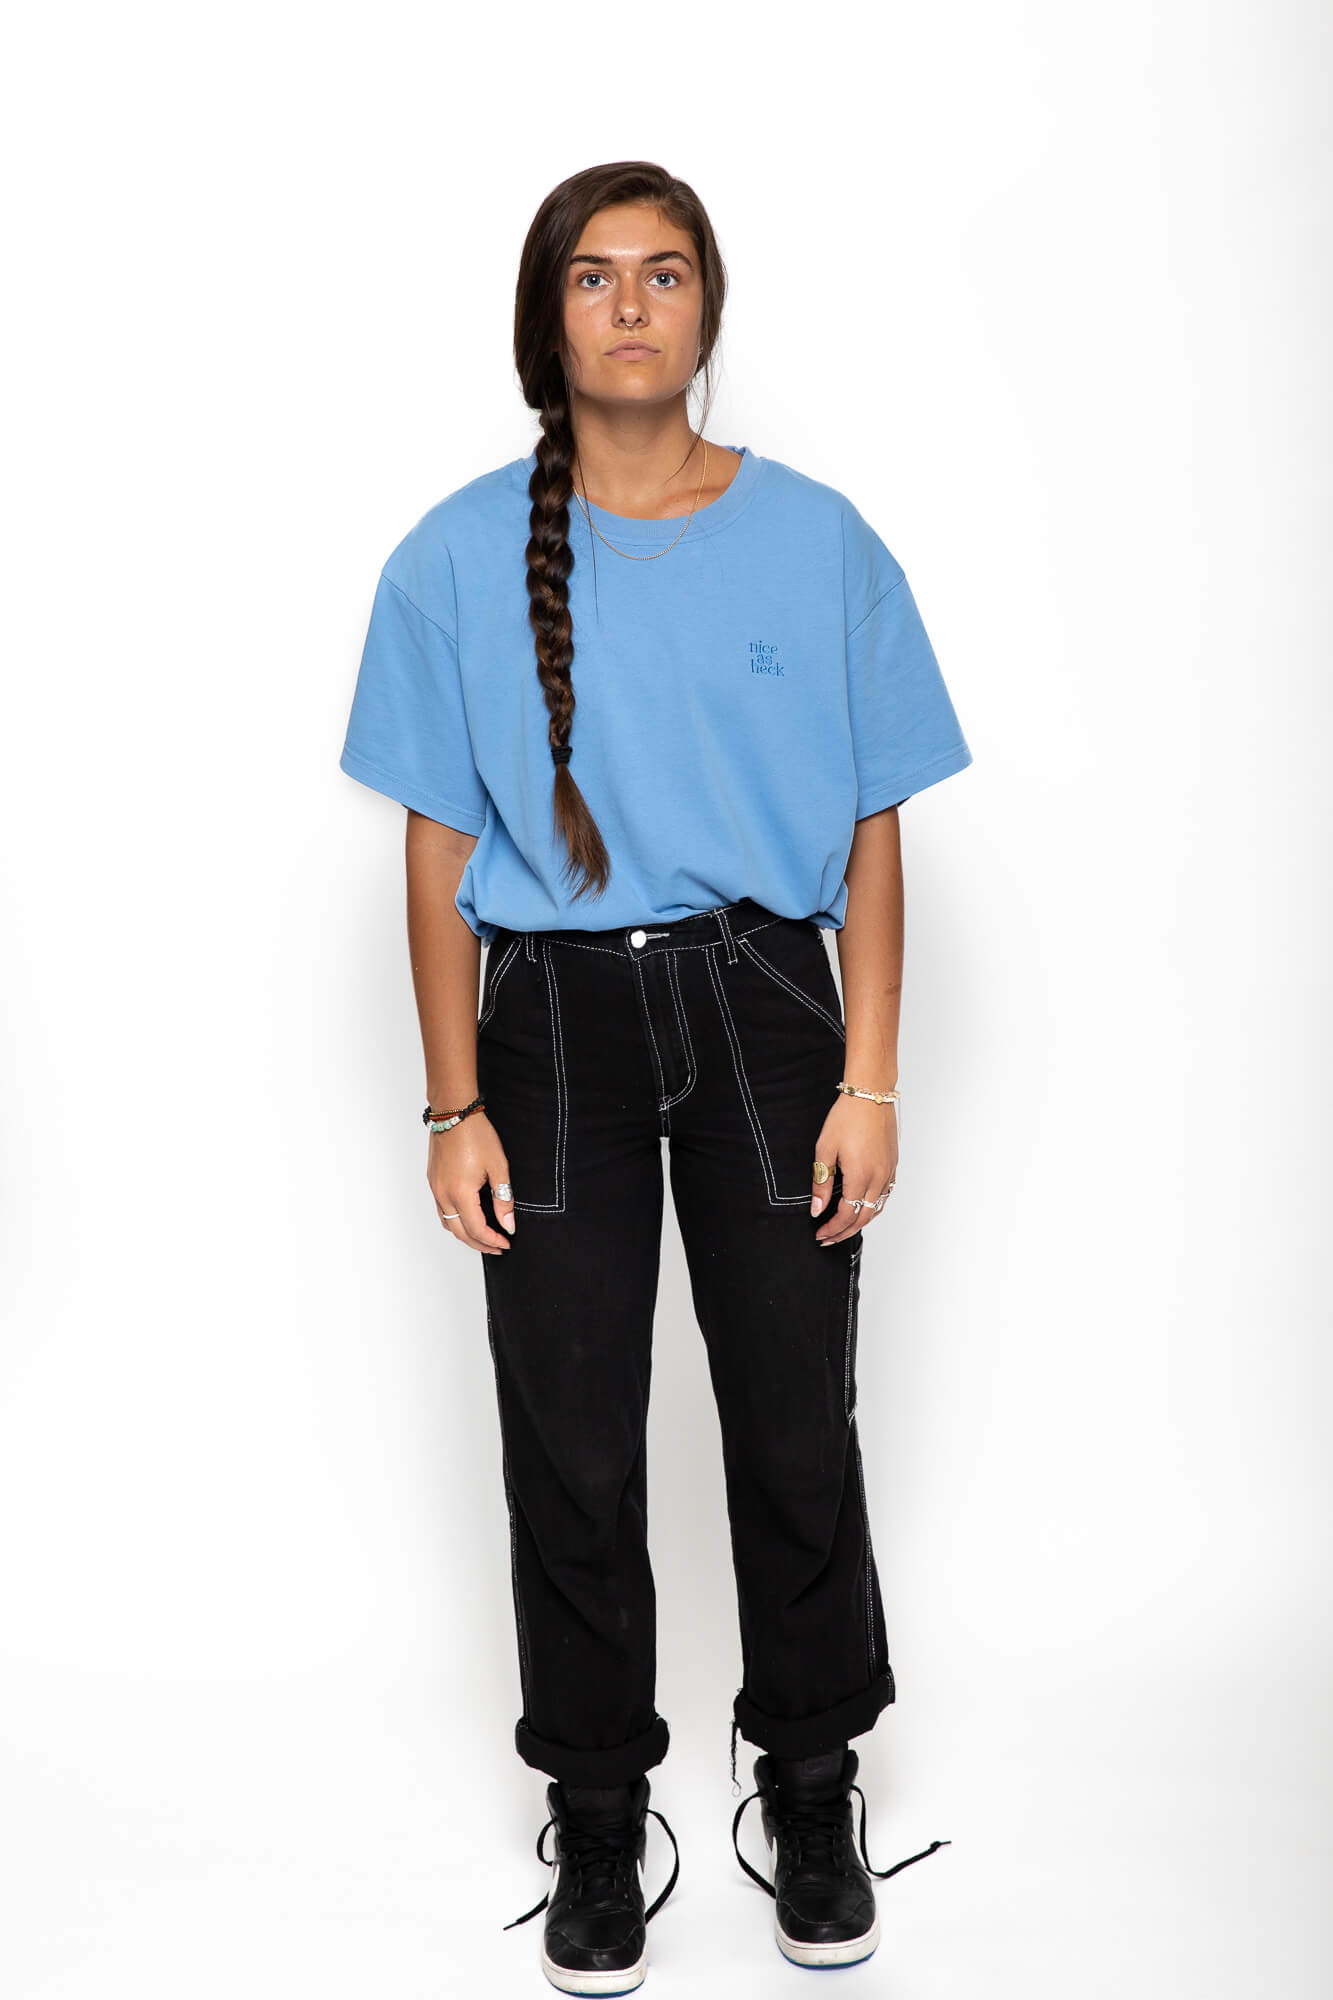 female model wearing the blue weekender tee with her arms by her side